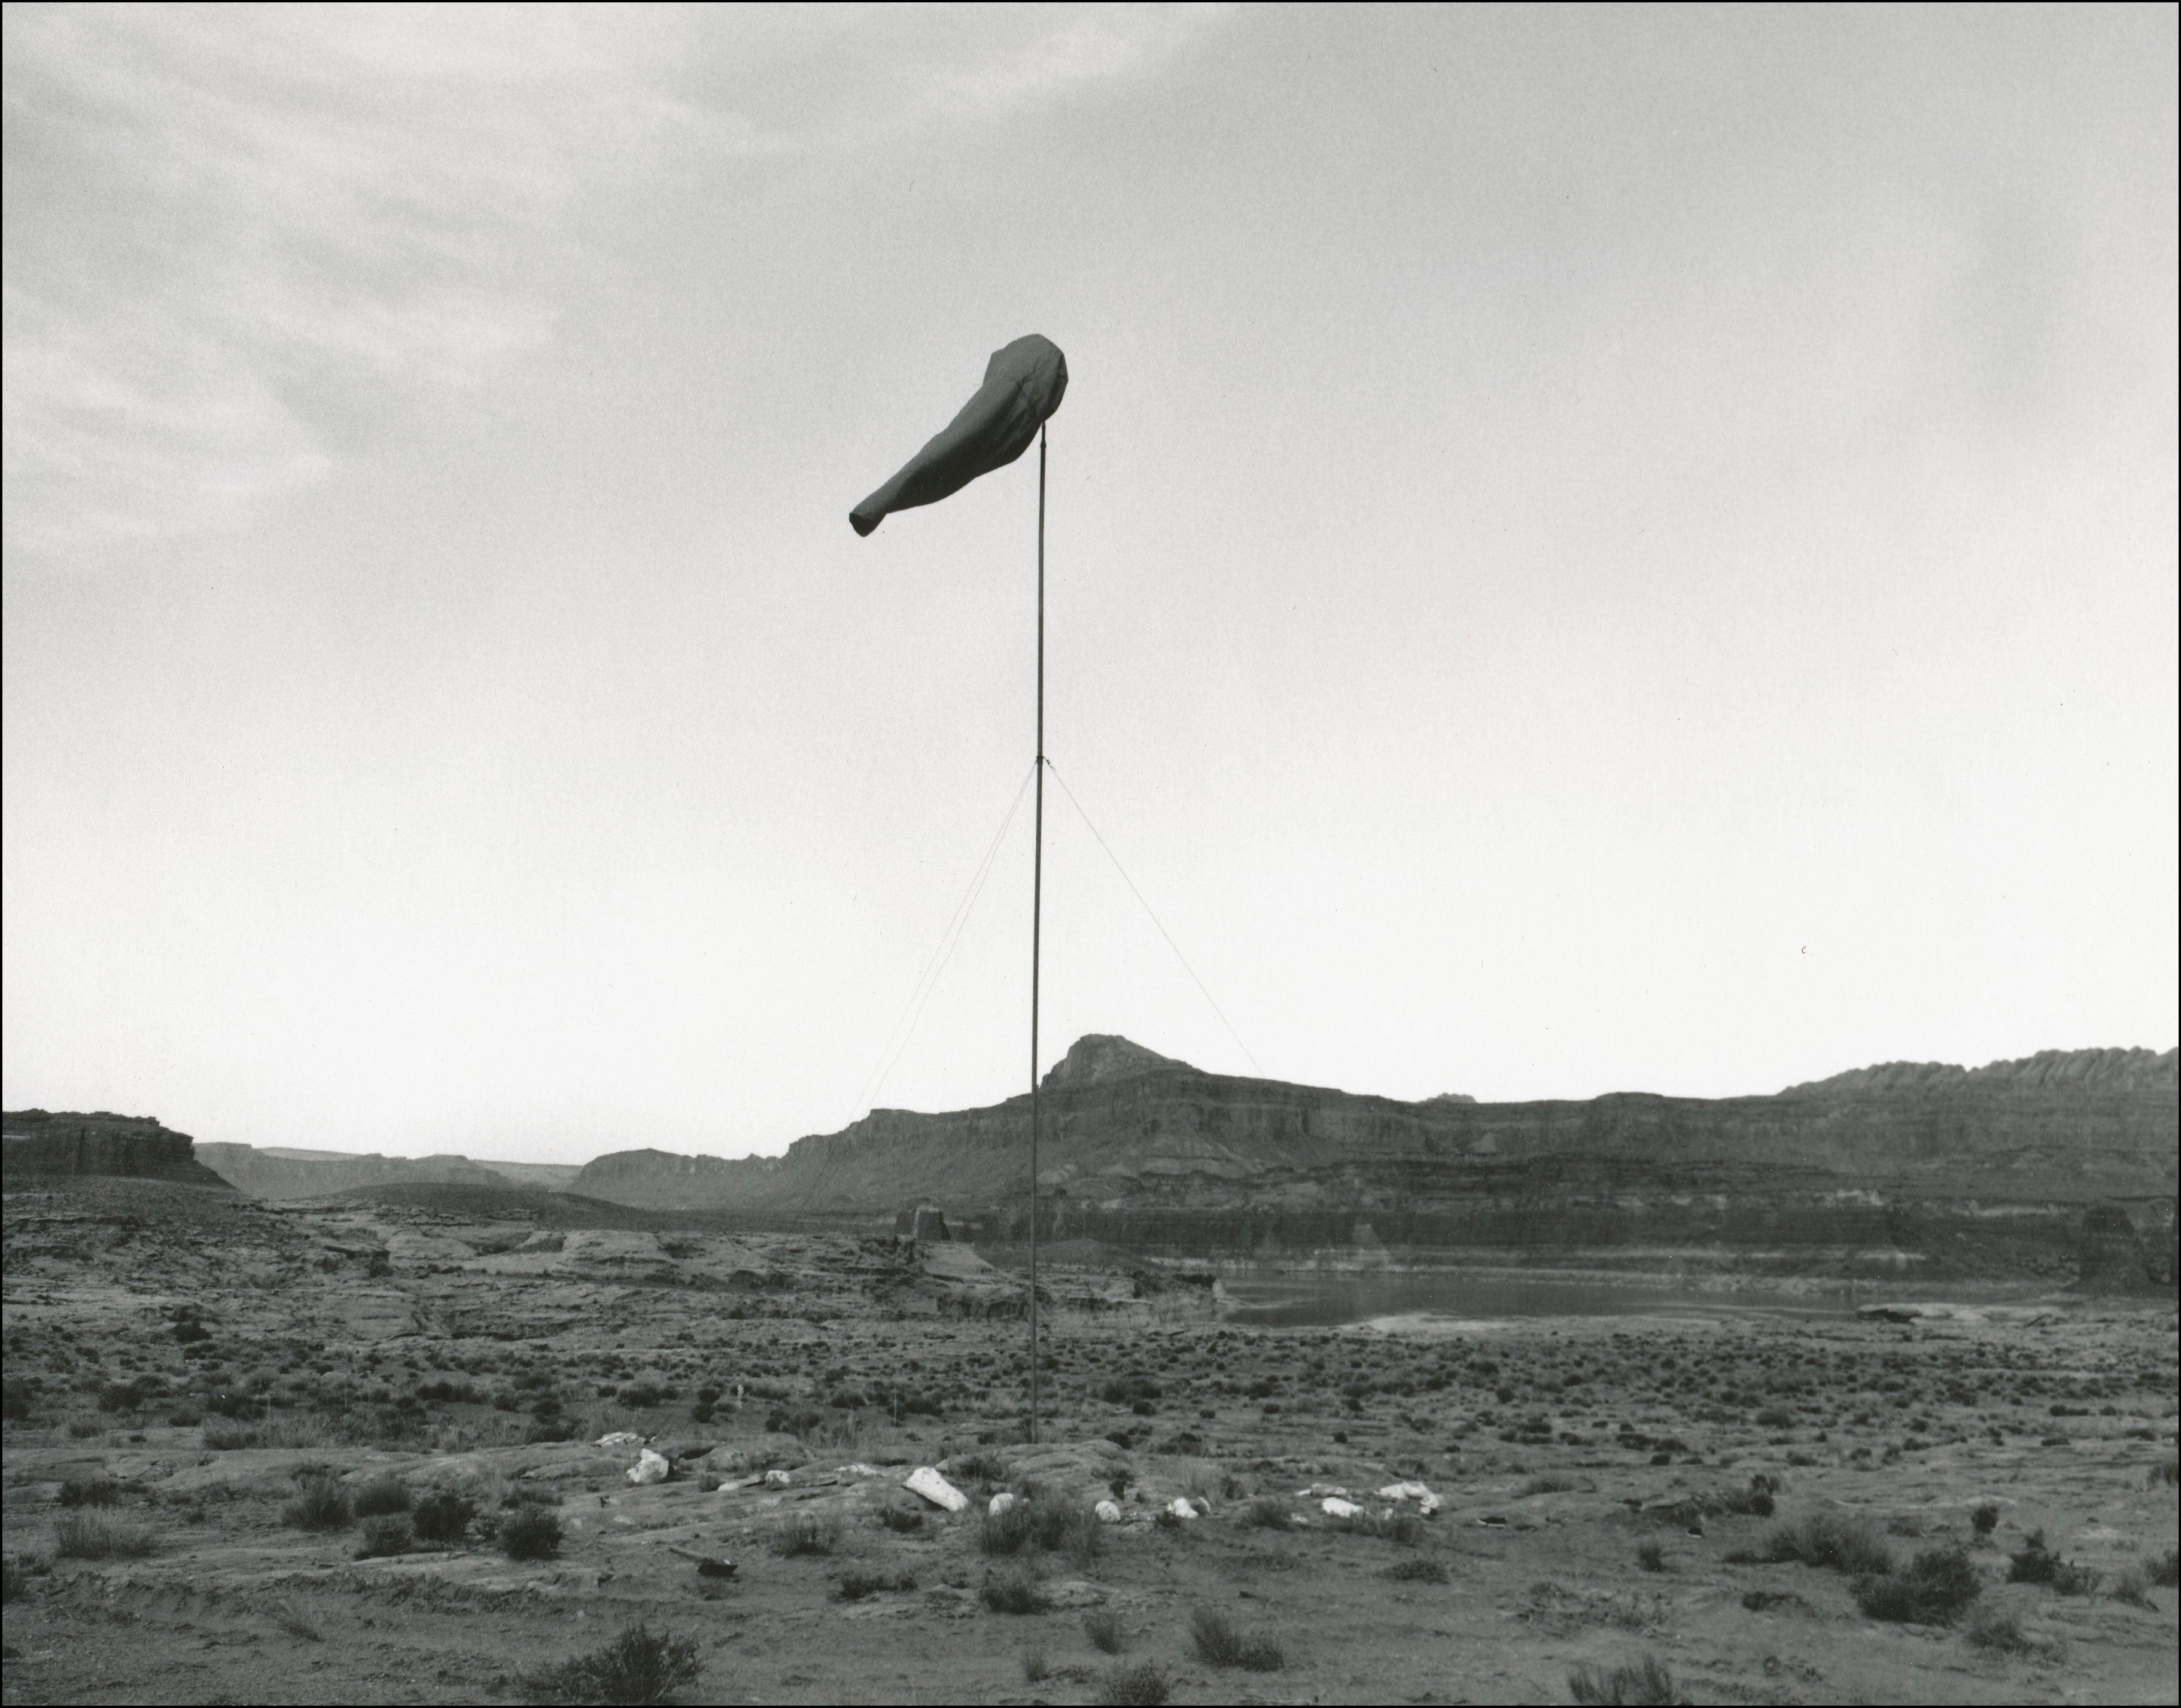 Wind flag in desert with plateaus in background